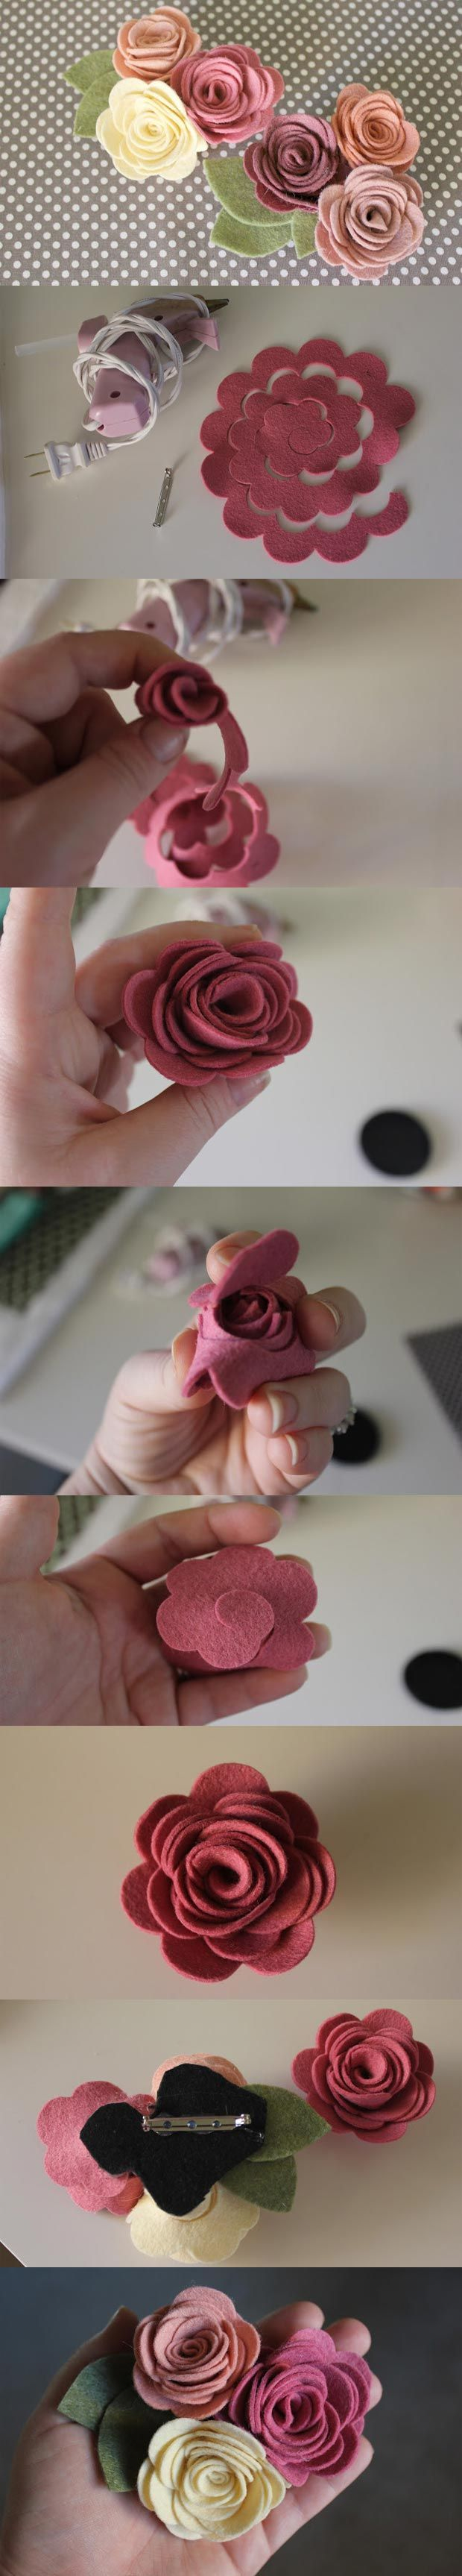 Cute way to make flowers for barrettes and headbands